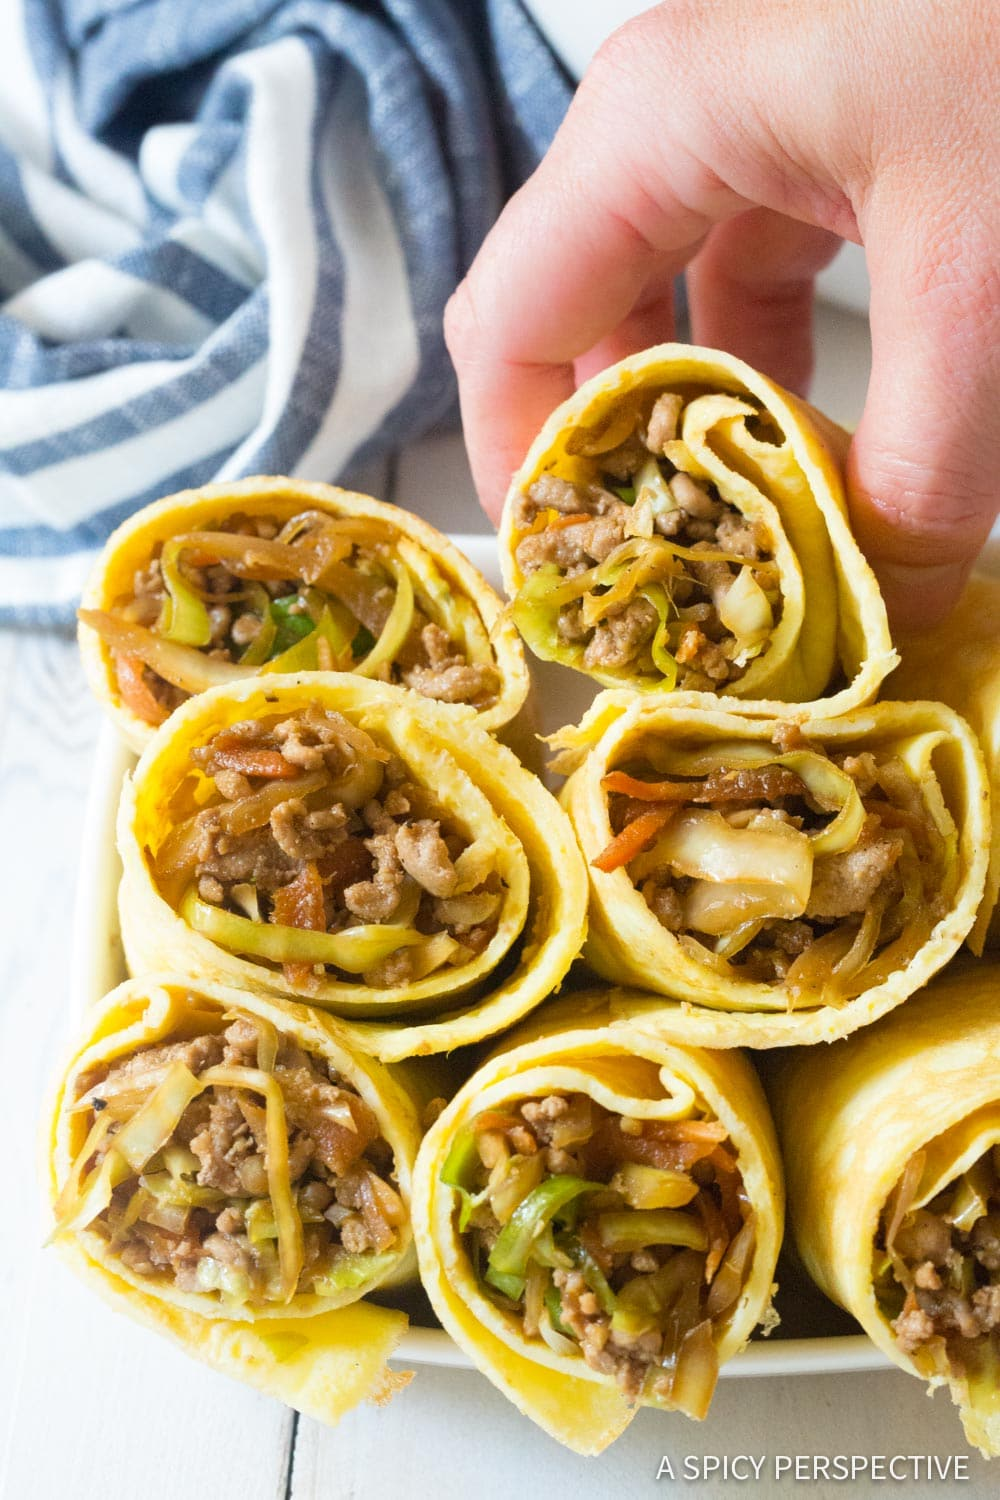 Keto Egg Roll Wrap Recipe #ASpicyPerspective #Ketogenic #Paleo